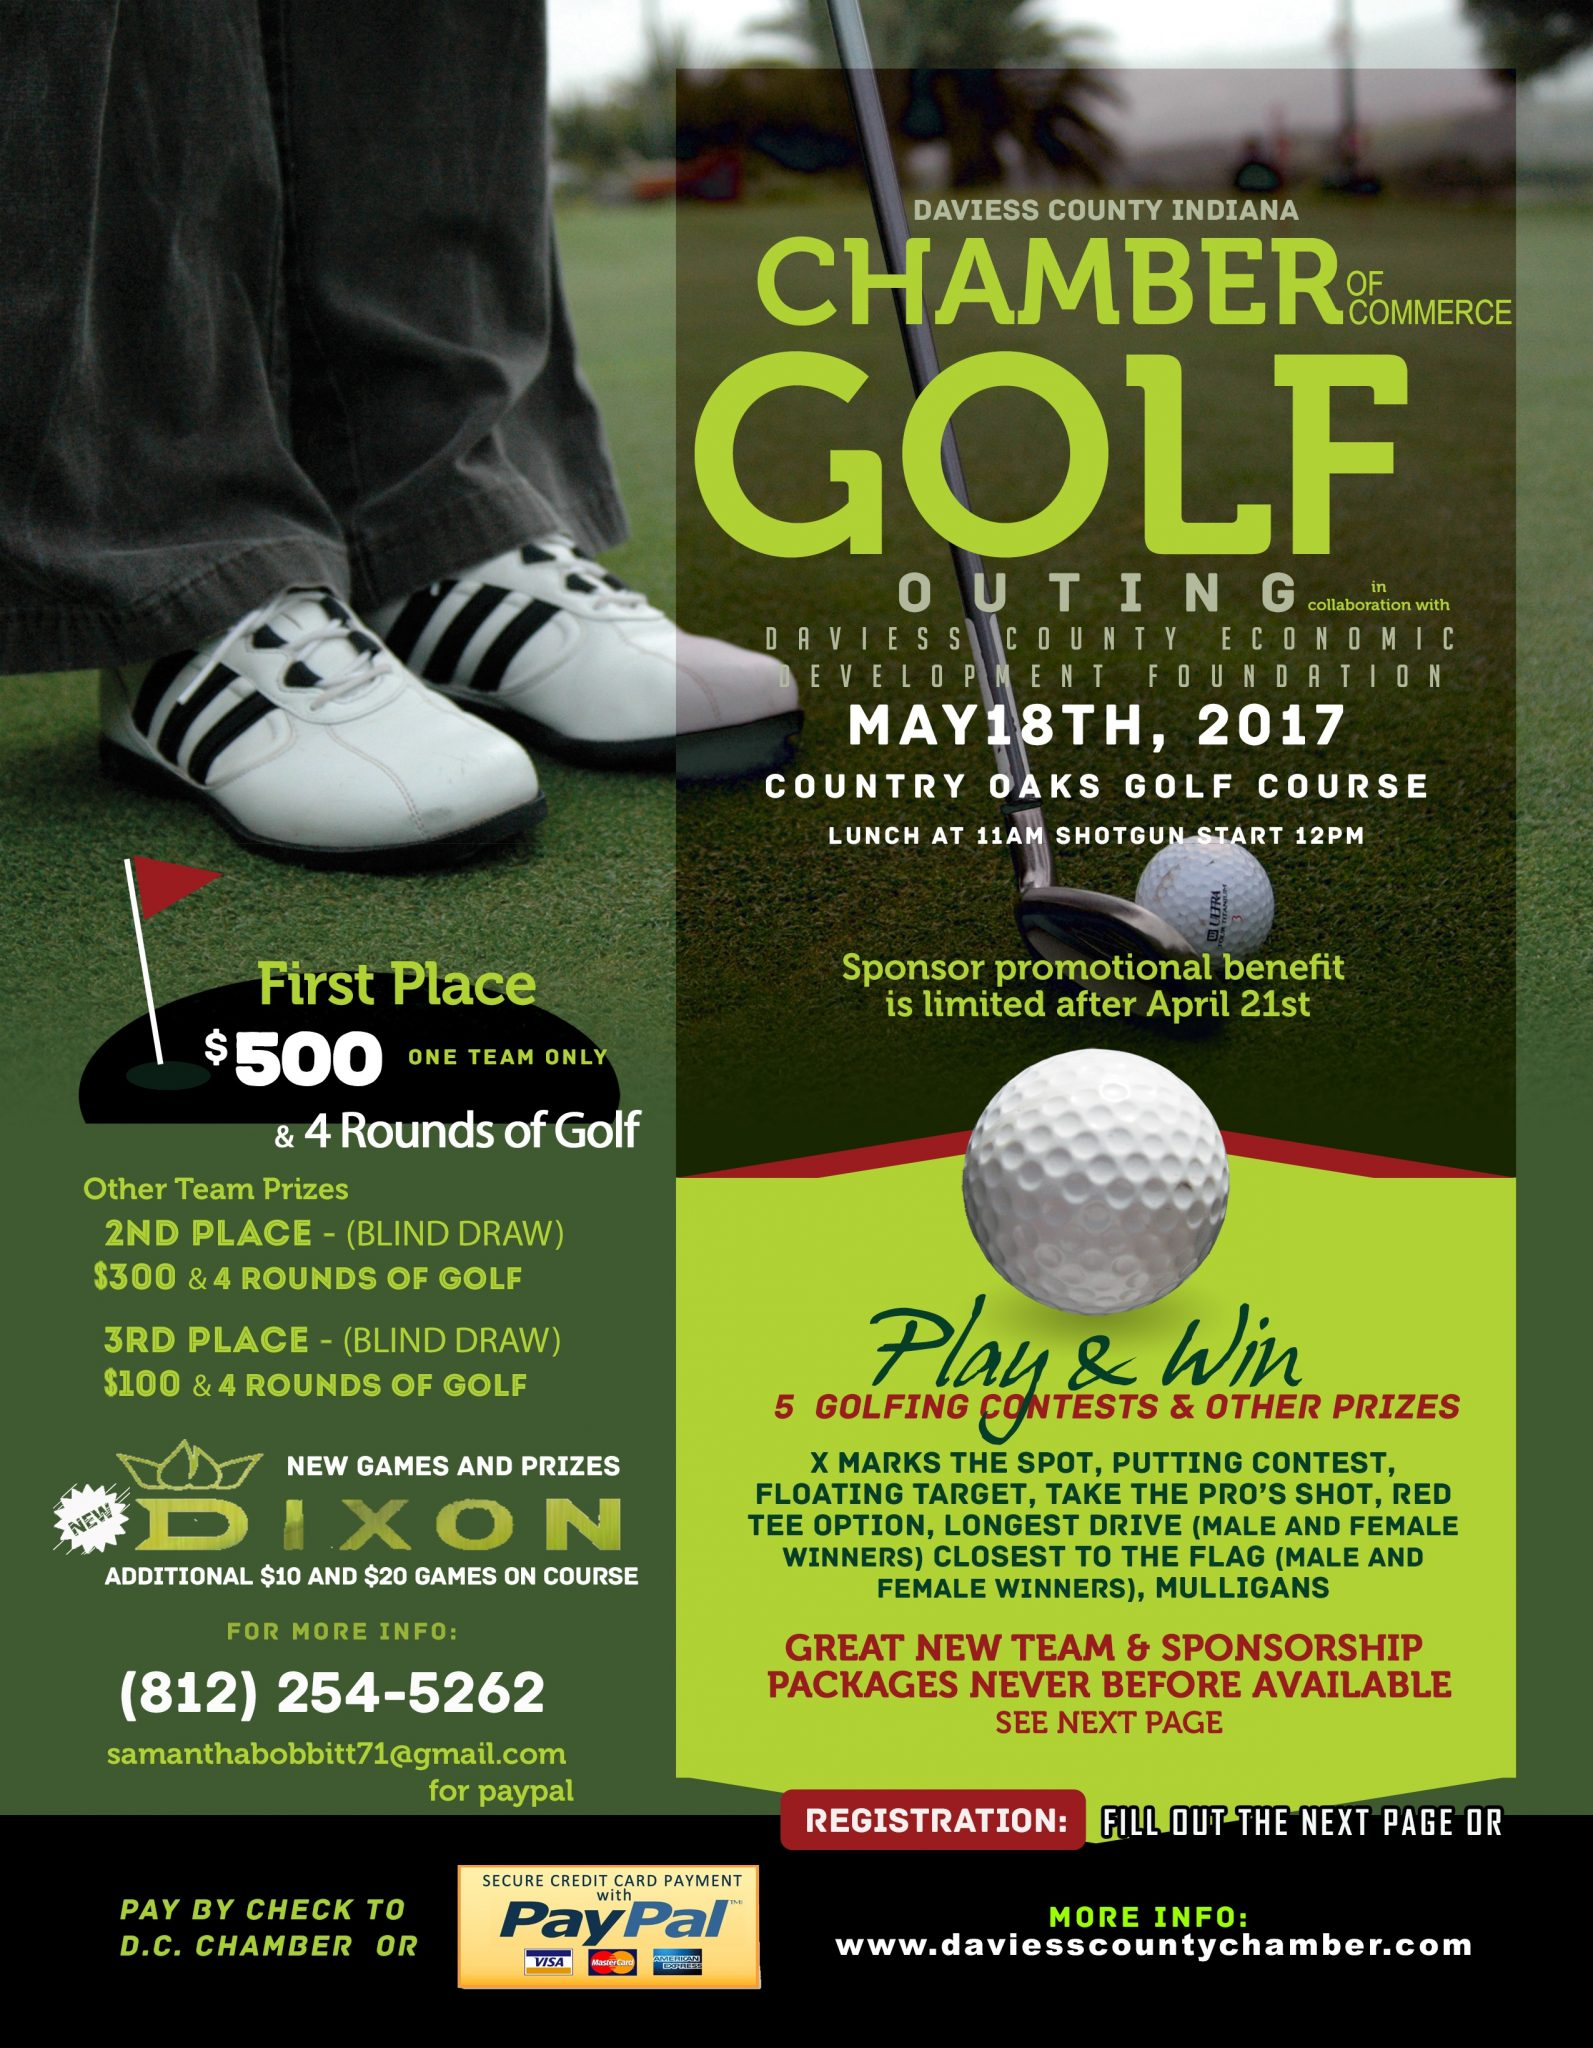 Daviess County Chamber Golf Outing May 18